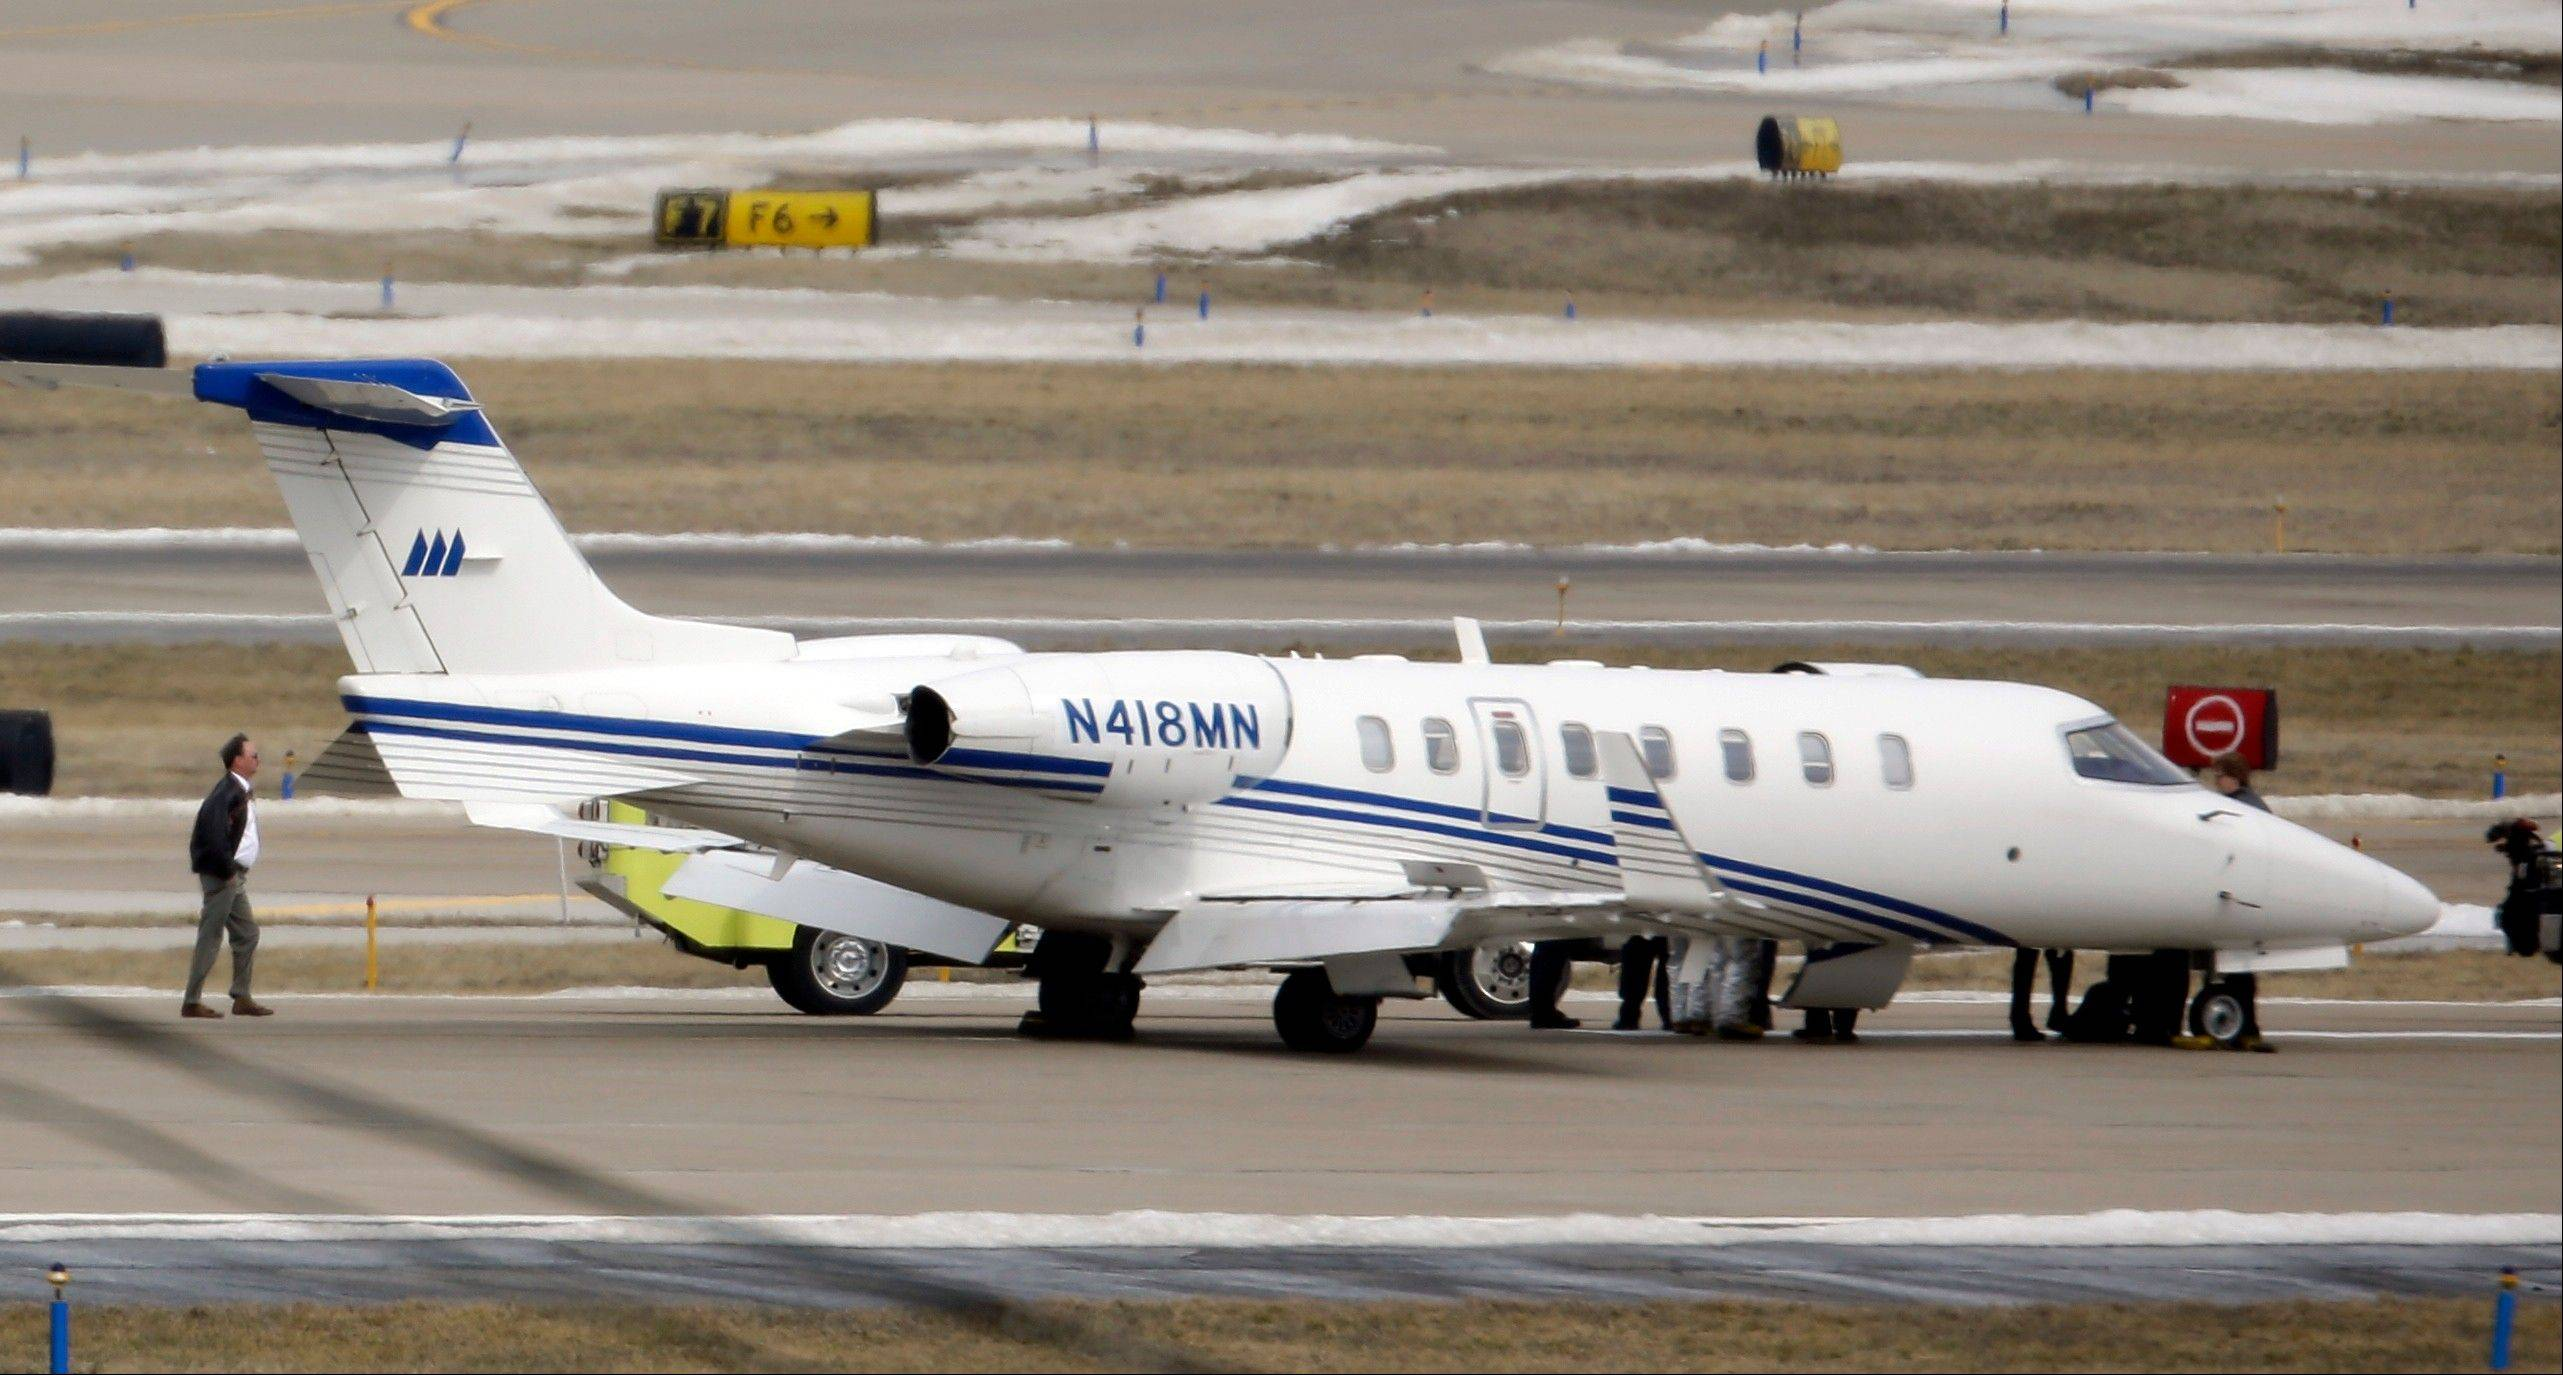 An aircraft sits on the tarmac after making an emergency landing at Lambert St. Louis International Airport Monday in St. Louis. An official said the eight passengers aboard the small aircraft with landing gear troubles walked off the plane after it landed safely.